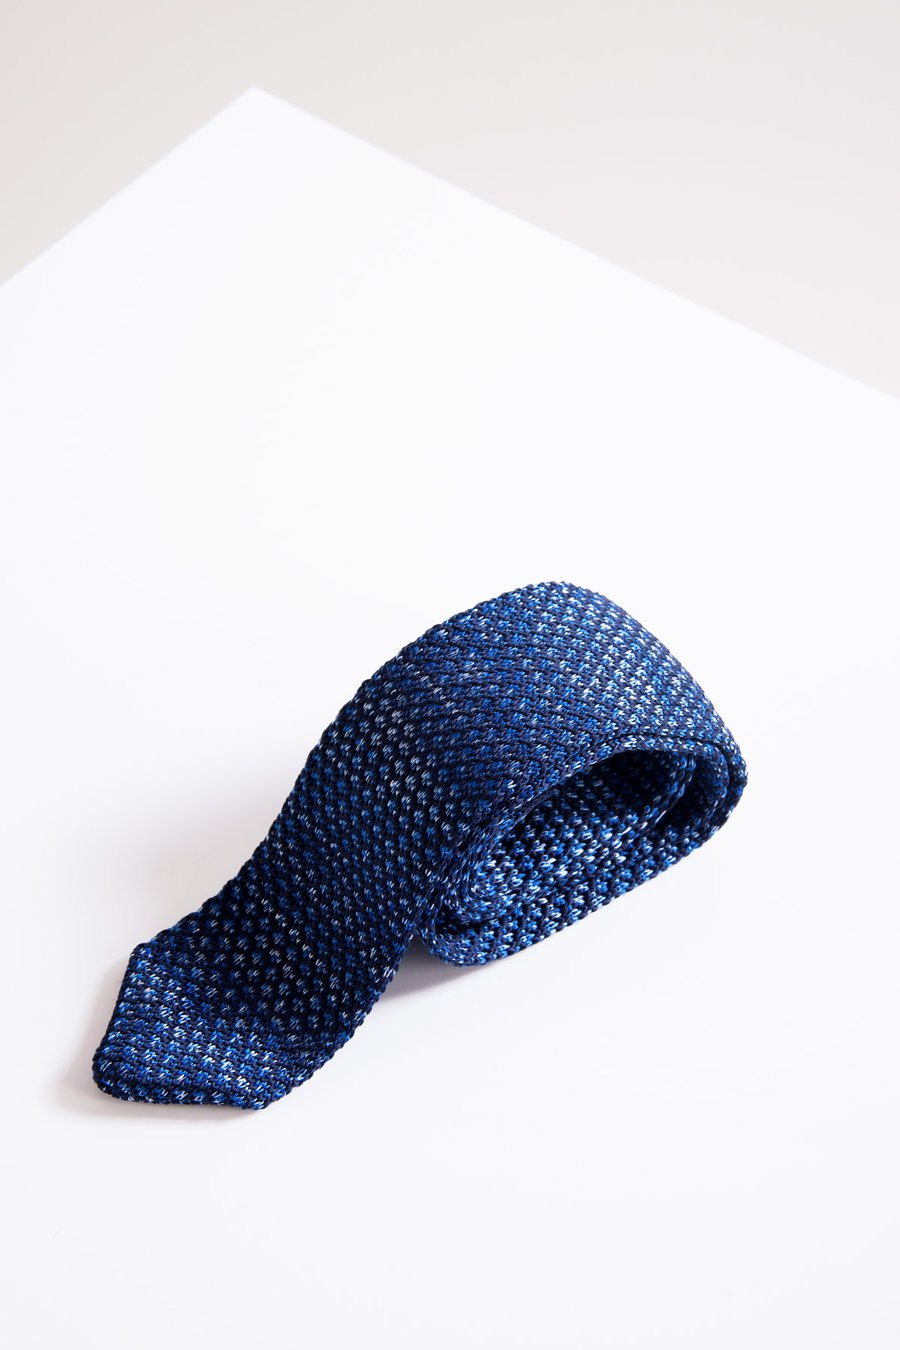 KPT Blue Diamond Knitted Tie - Wedding Suit Direct